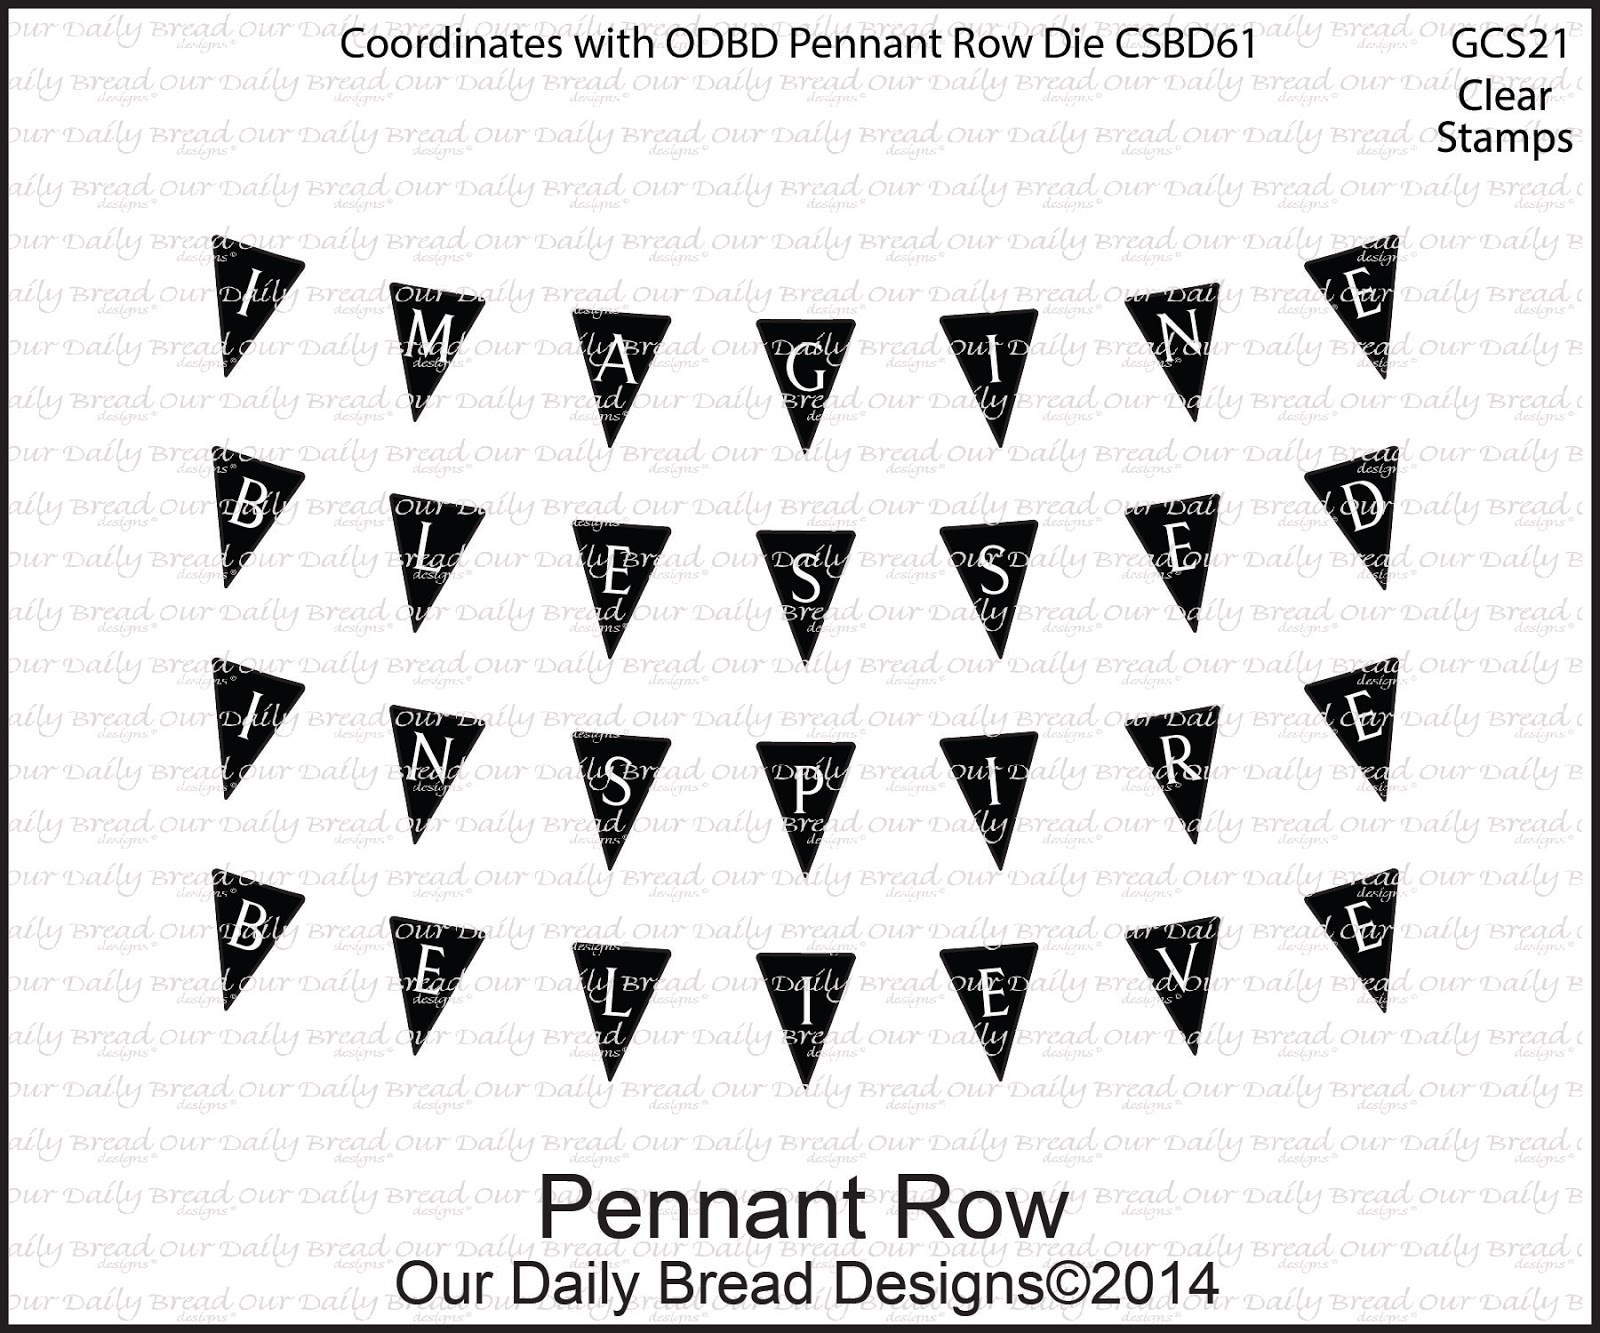 Stamps - Our Daily Bread Designs Pennant Row